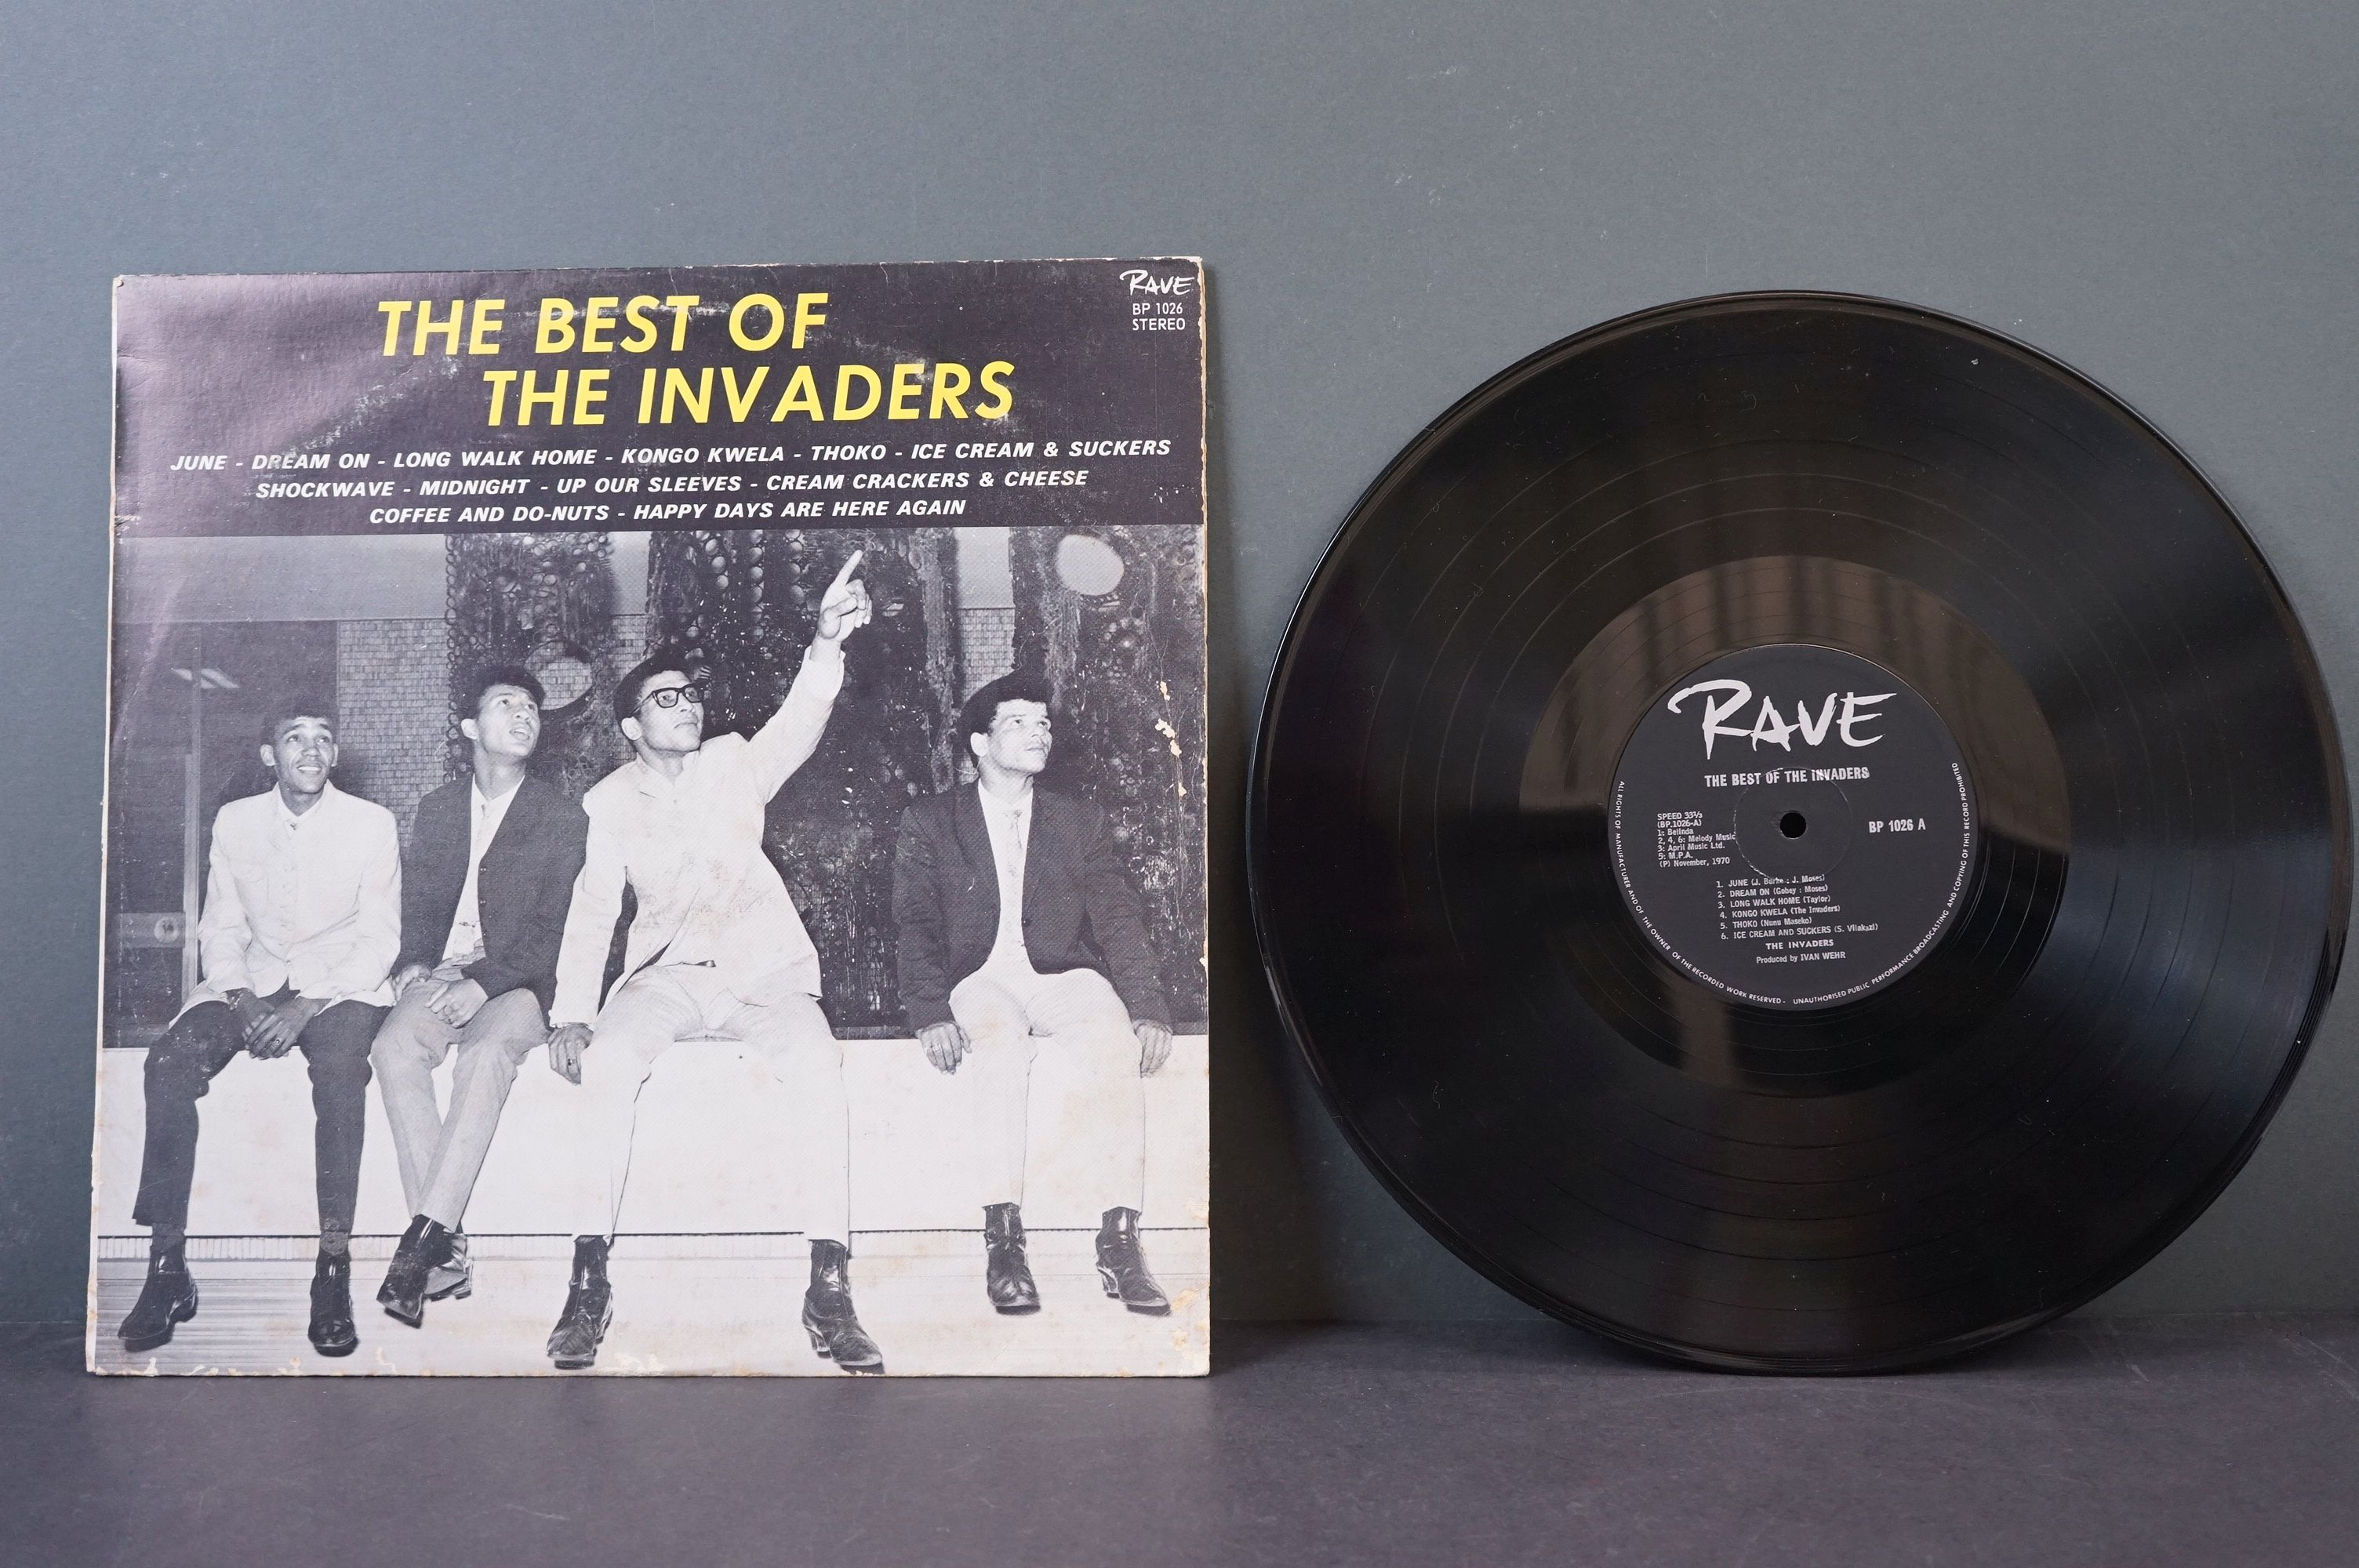 Vinyl - Psych / Rock / Garage - Four scarce African Pressing original albums to include Nazz - - Image 2 of 9